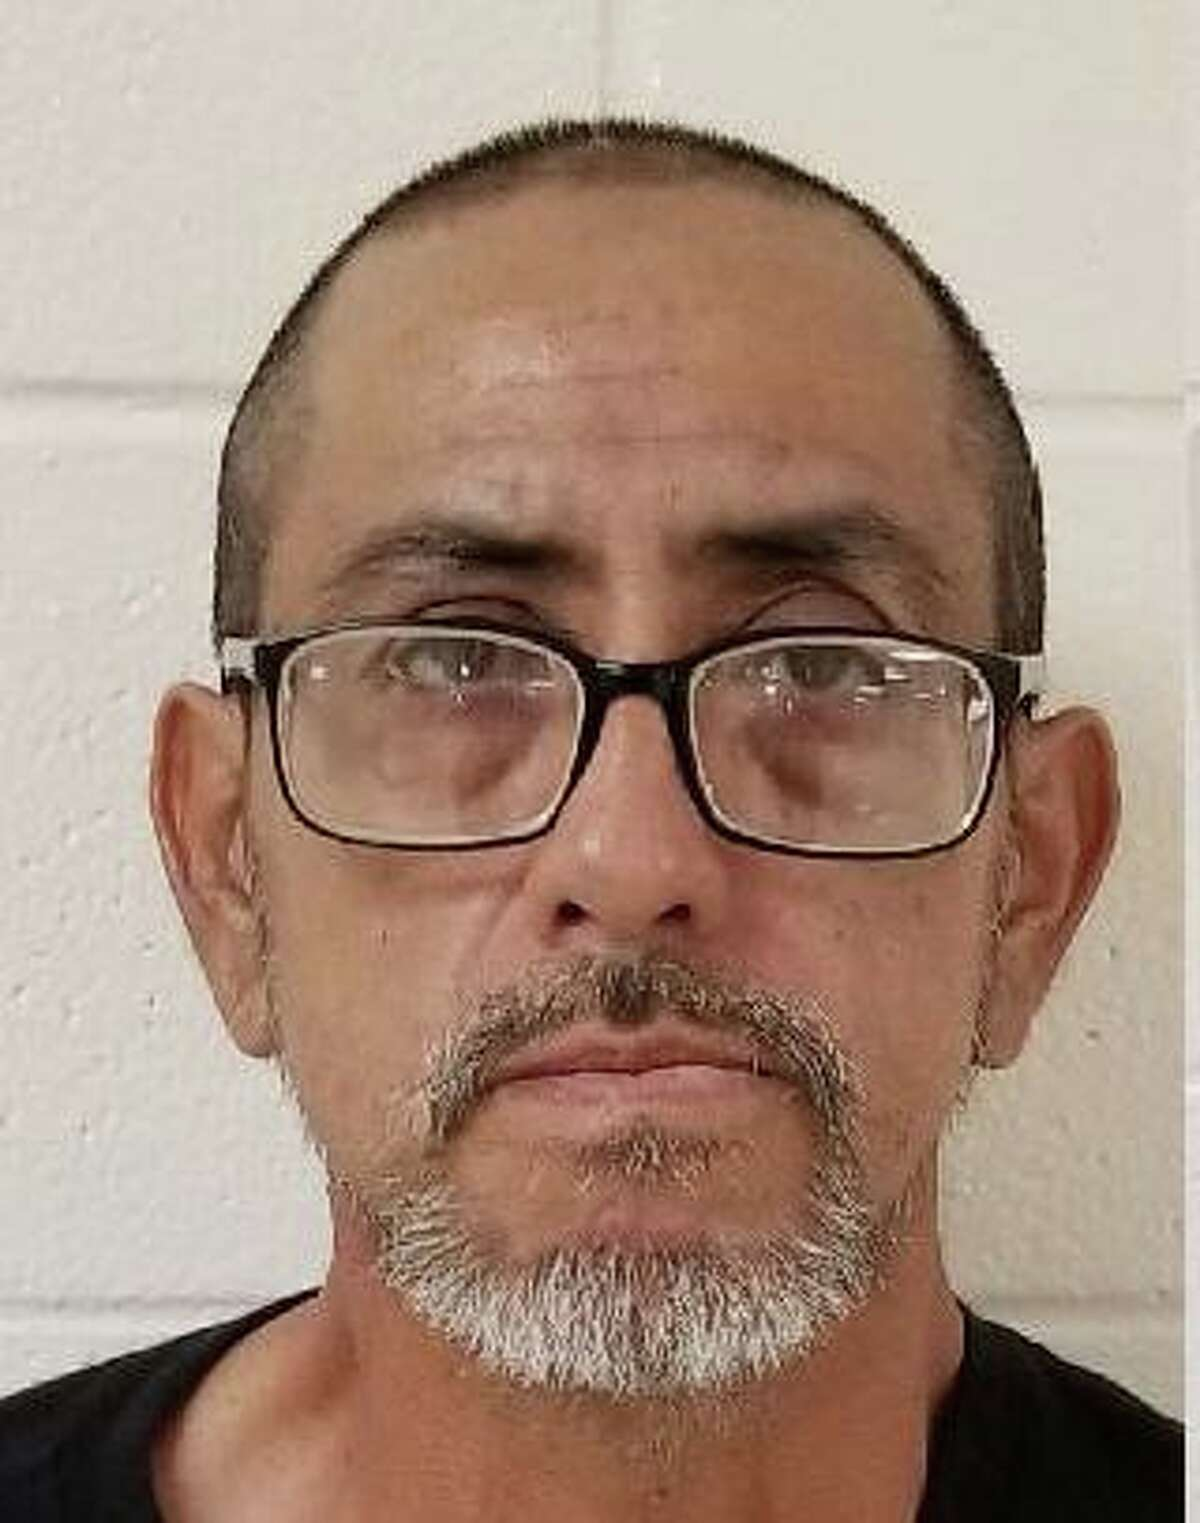 Carlos Medina, 56, was found in the parking lot of the Lamar Park Apartments at 1800 FM 1640 on April 15, 2021.